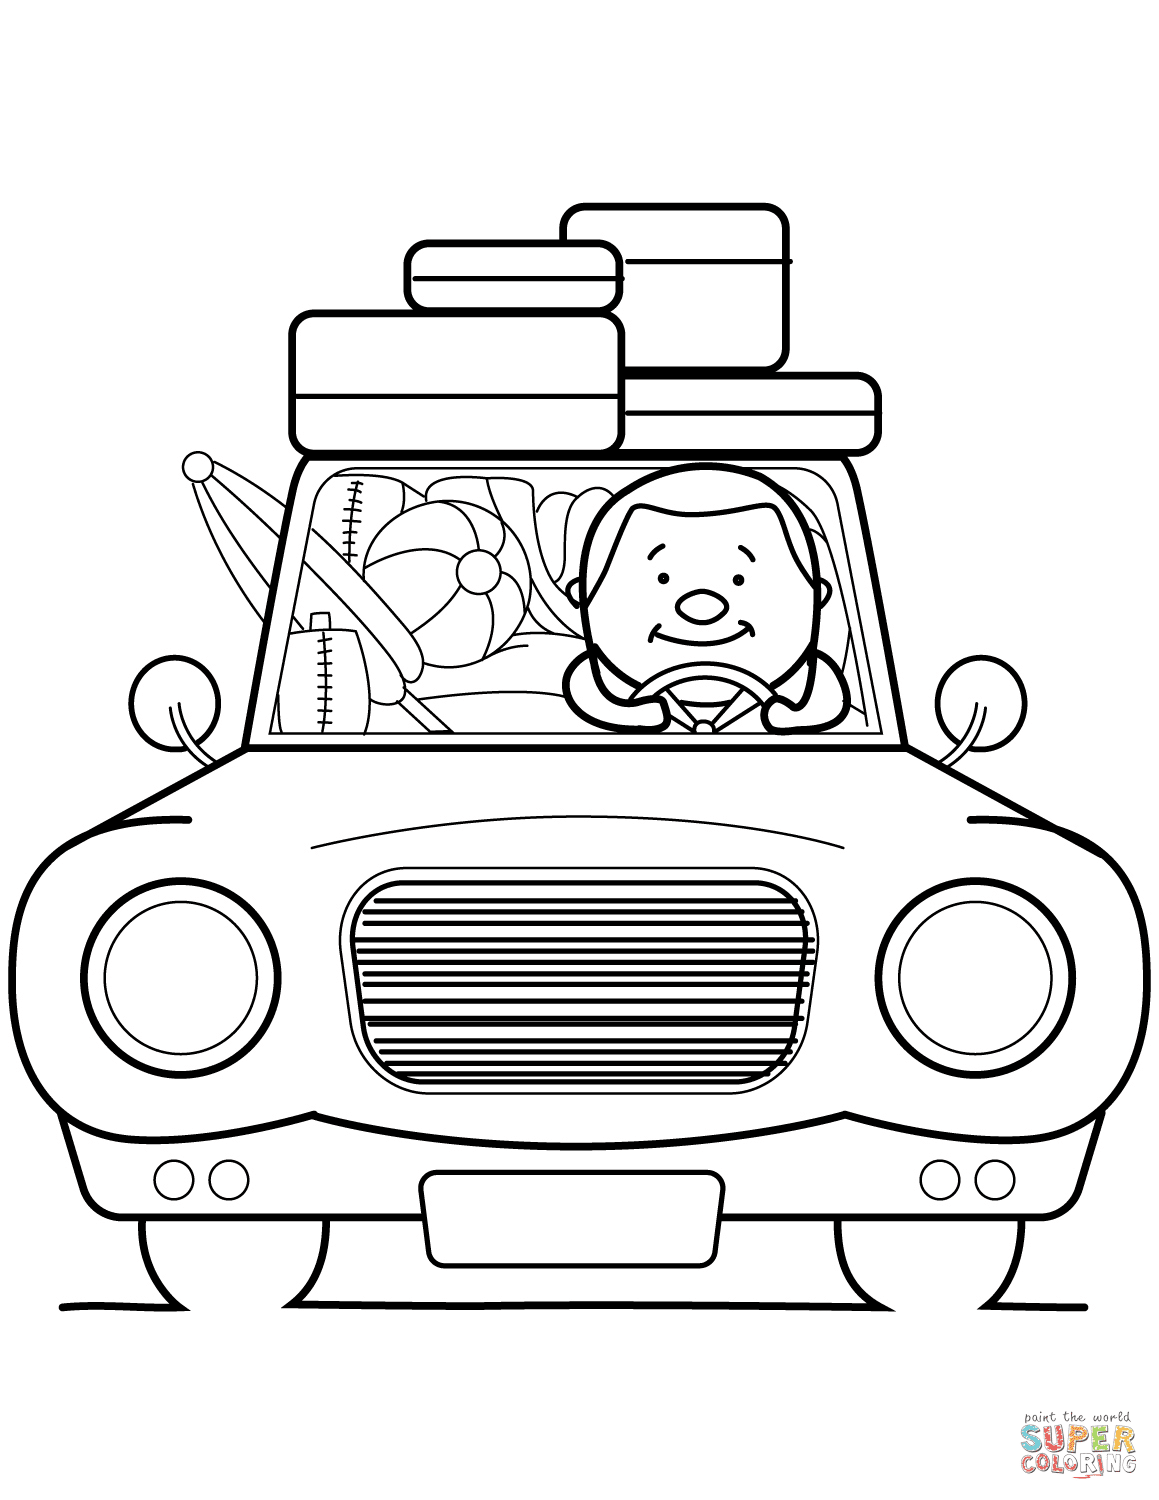 Go Summer Vacation! coloring page | Free Printable ...